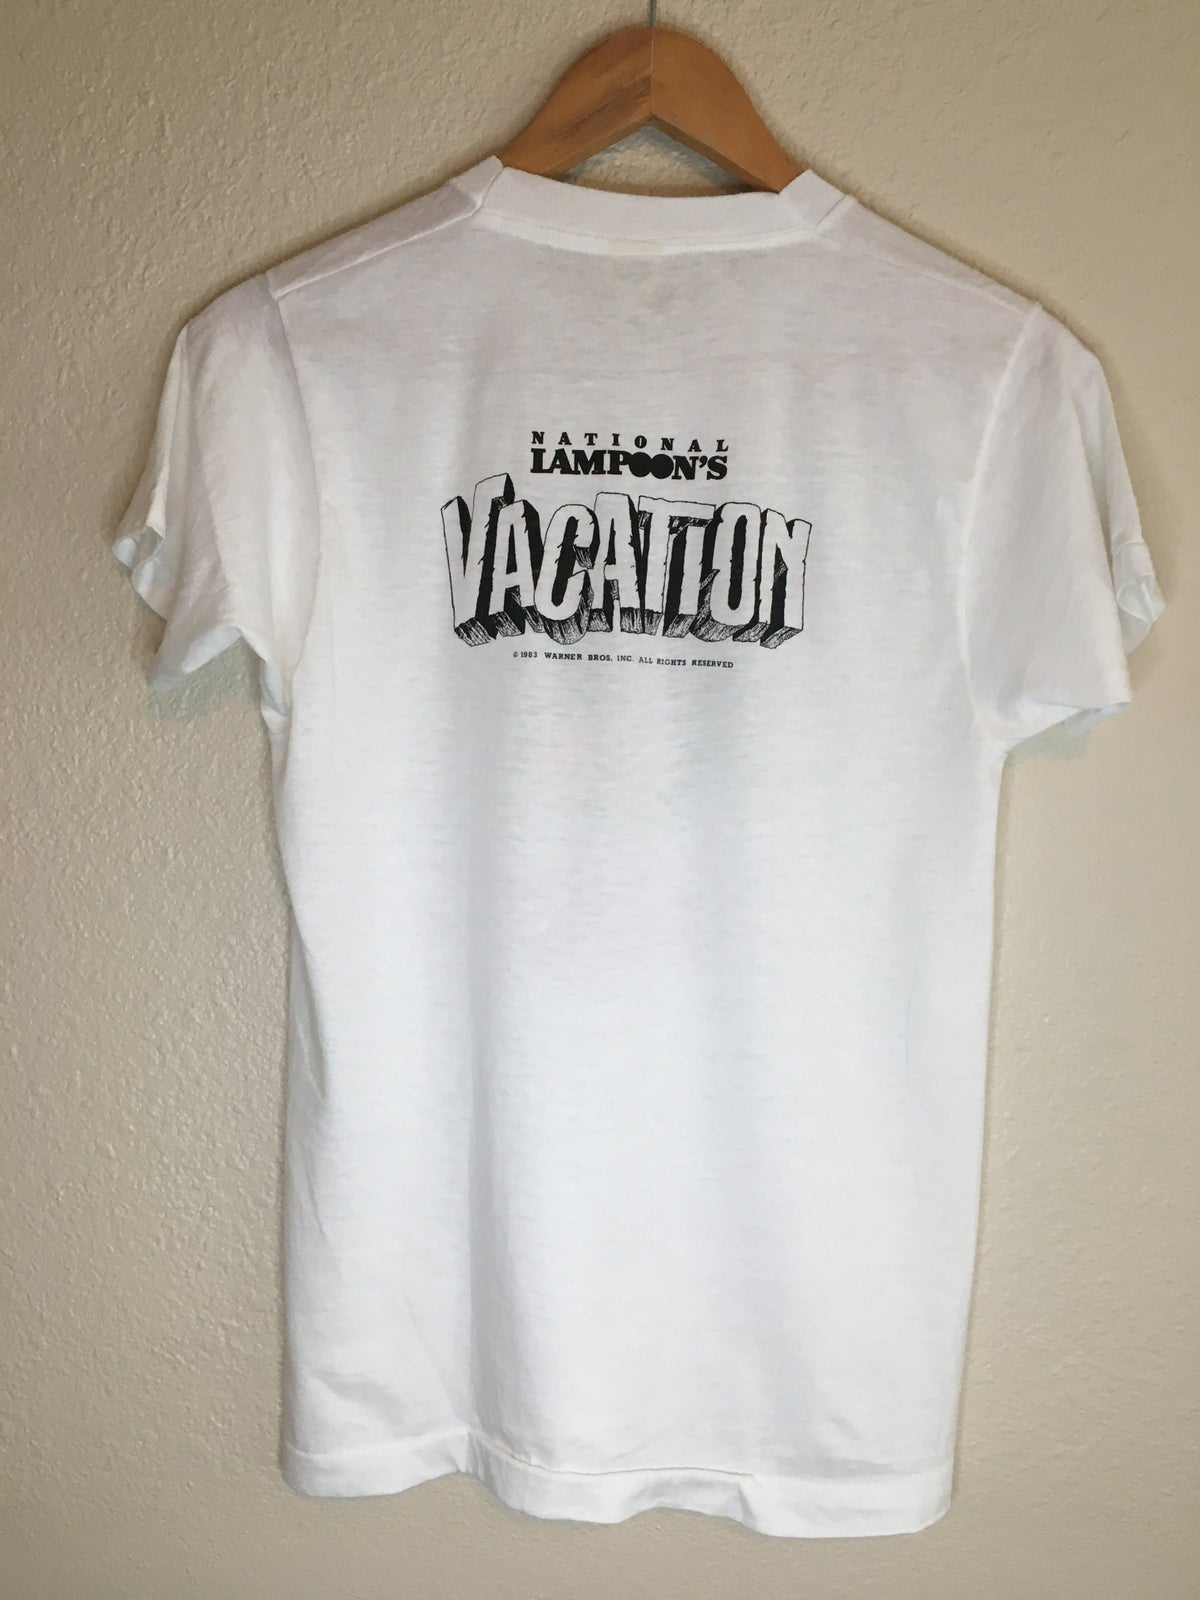 1983 National Lampoon's Vacation Promo  Tee